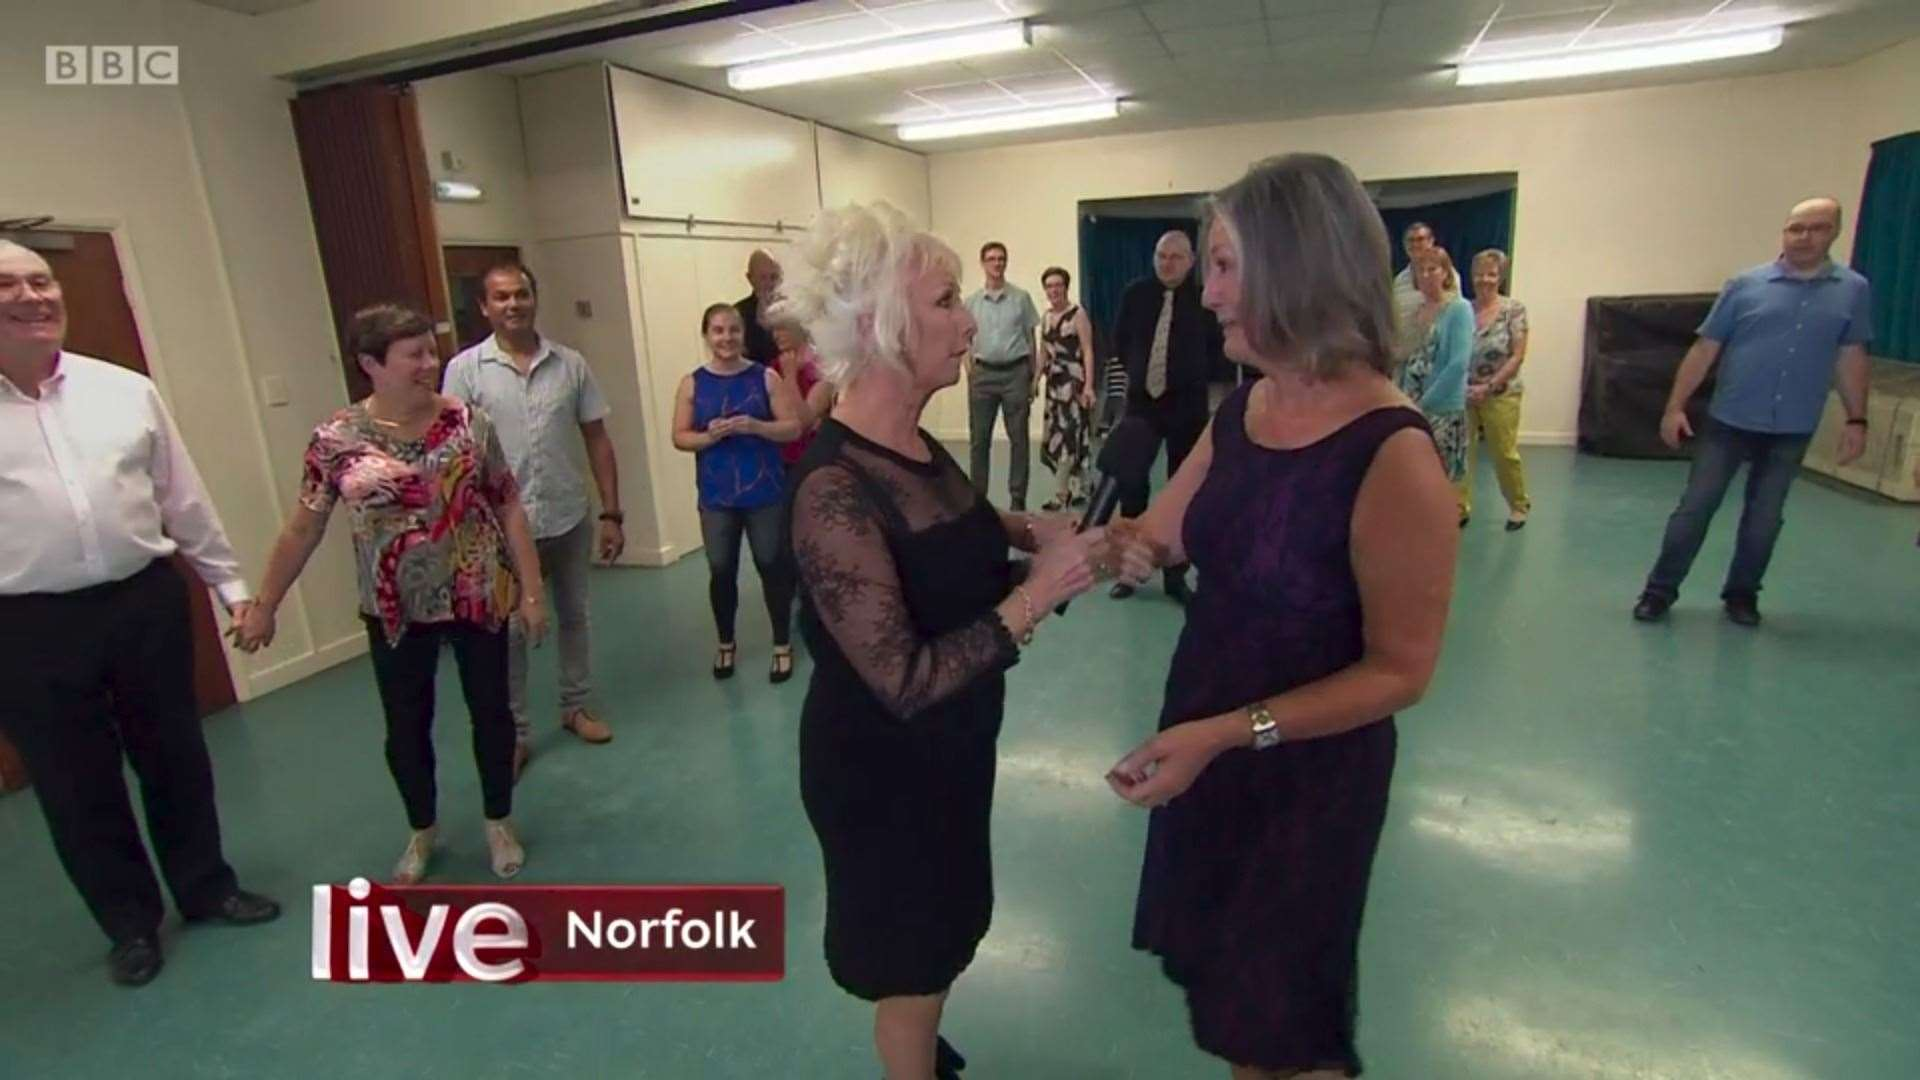 A still from BBC One's The One Show from 18.09.19 which shows former Strictly finalist Debbie McGee with Carole Jones of CJ Dance, and her class of students at Gaywood Church Rooms. Credit: BBC One.